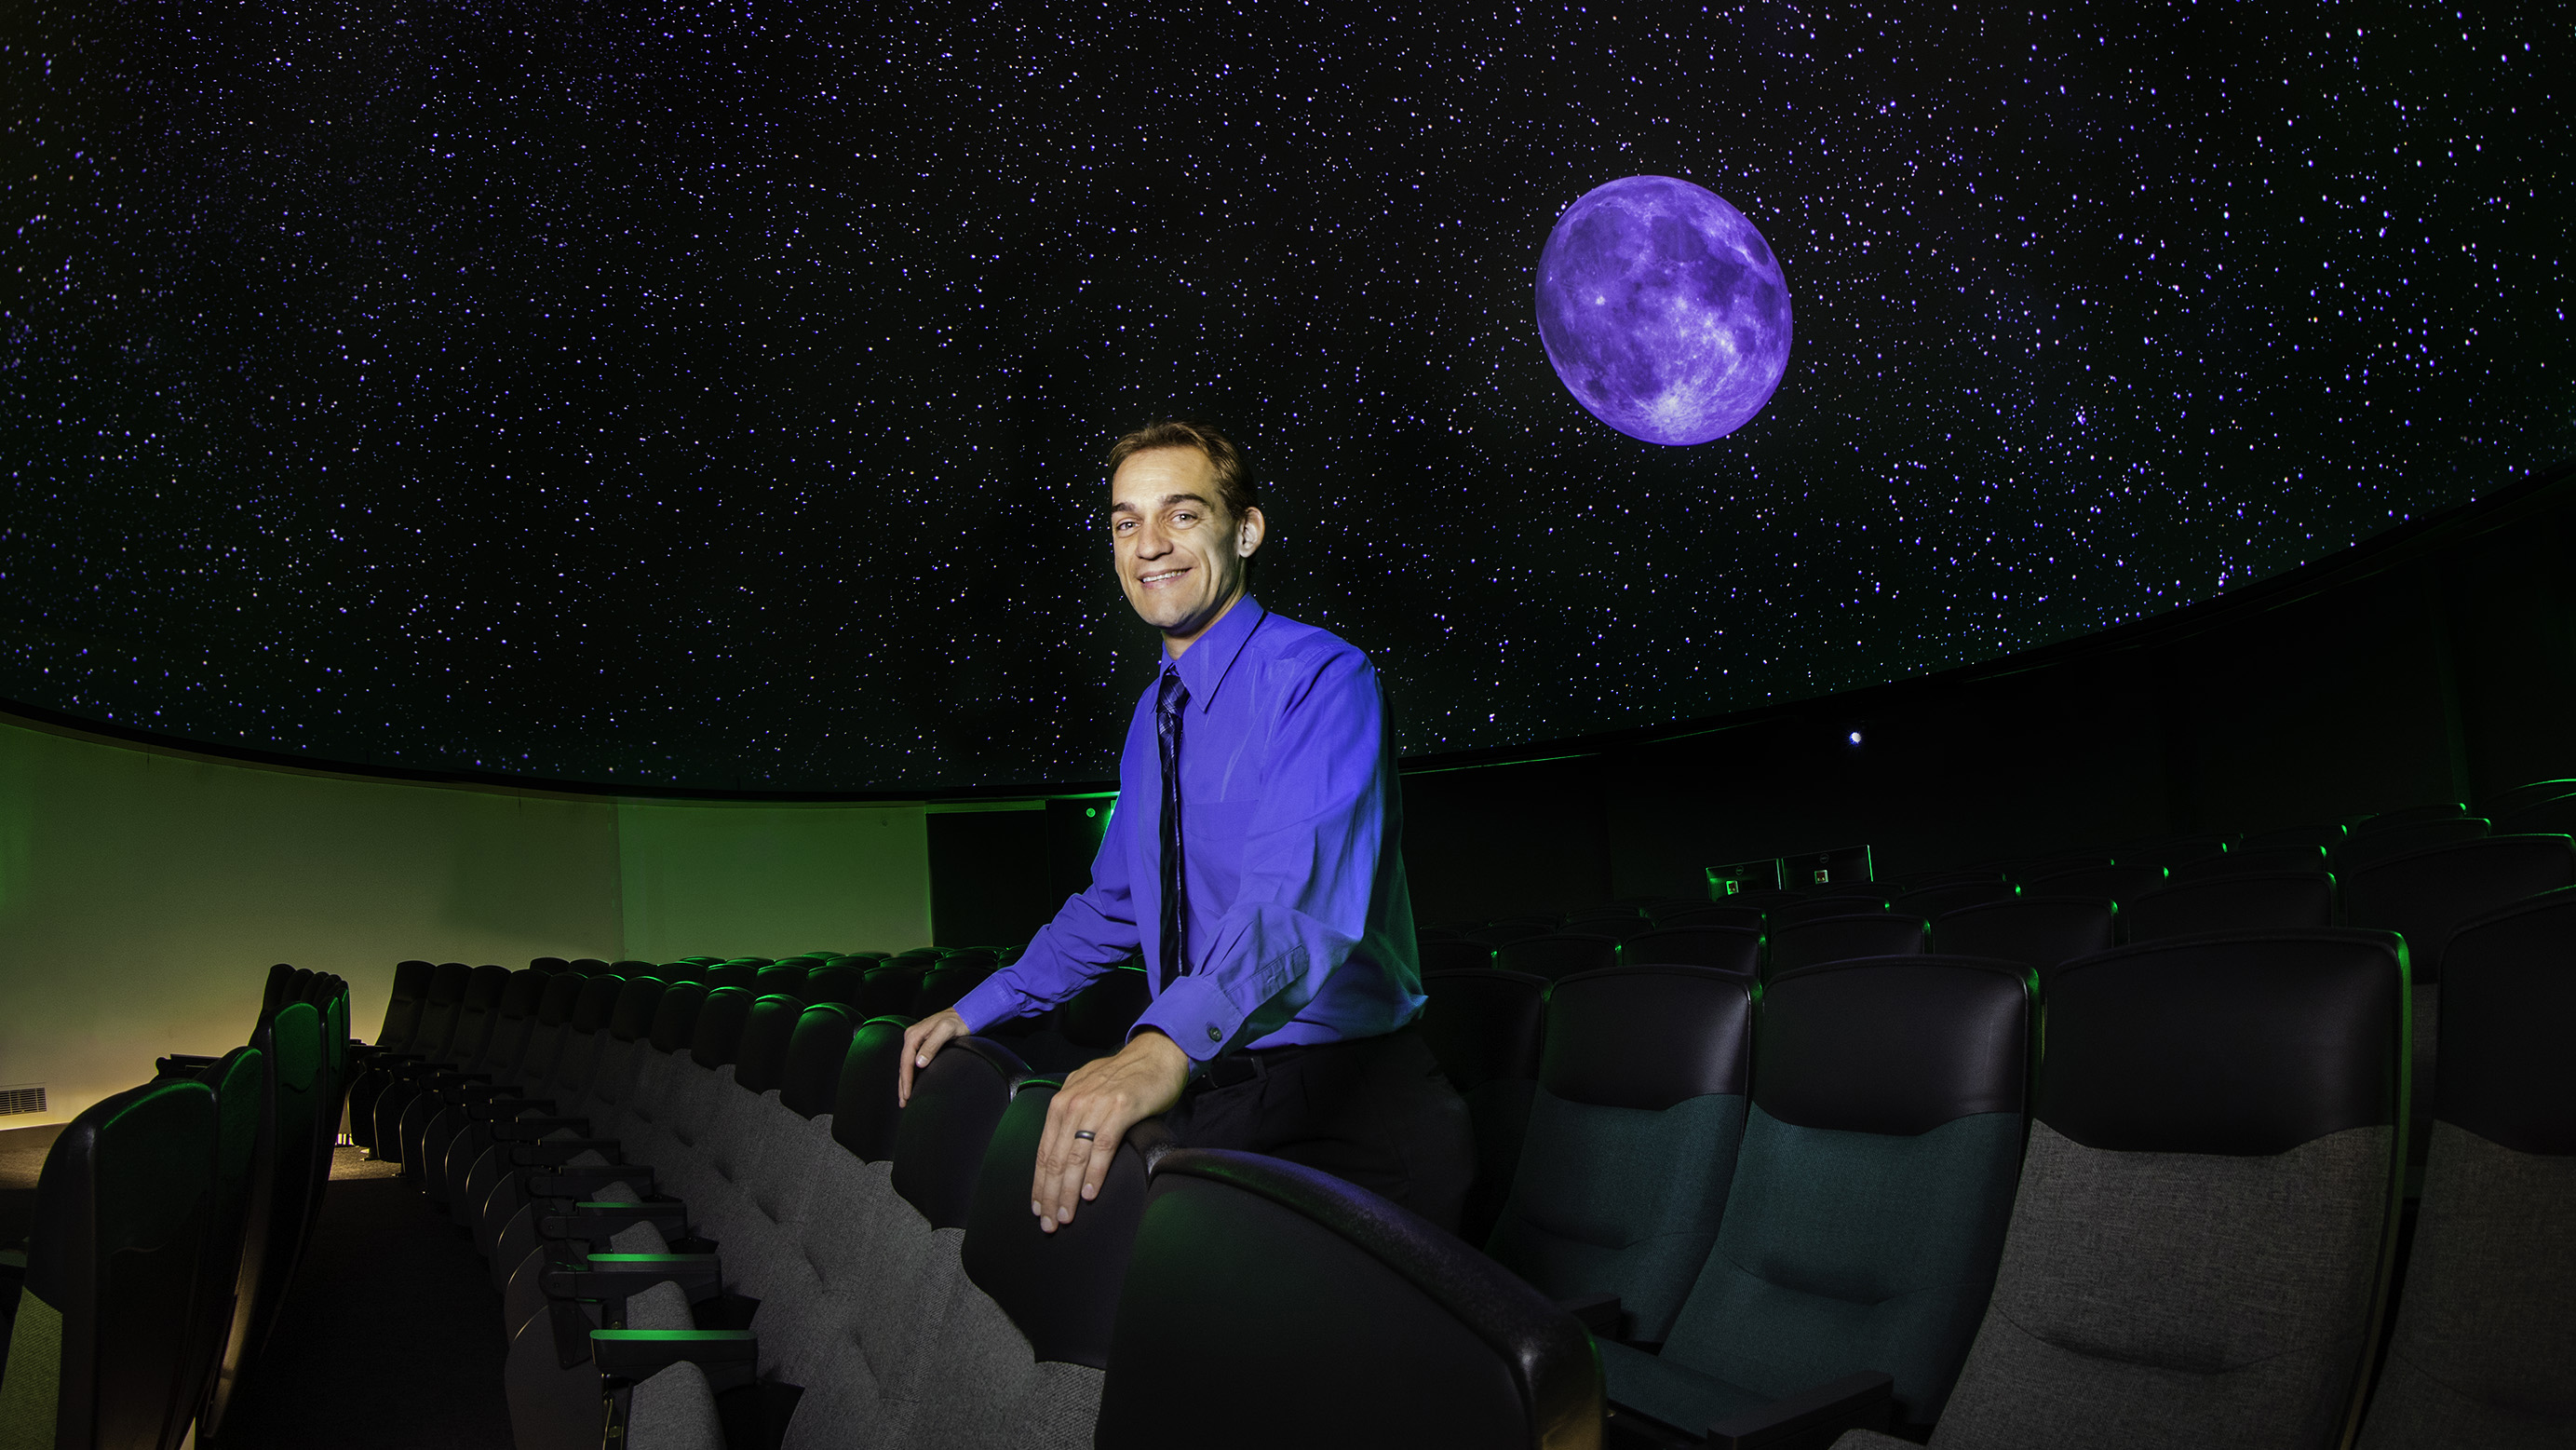 Planetarium offers new windows into space, director says